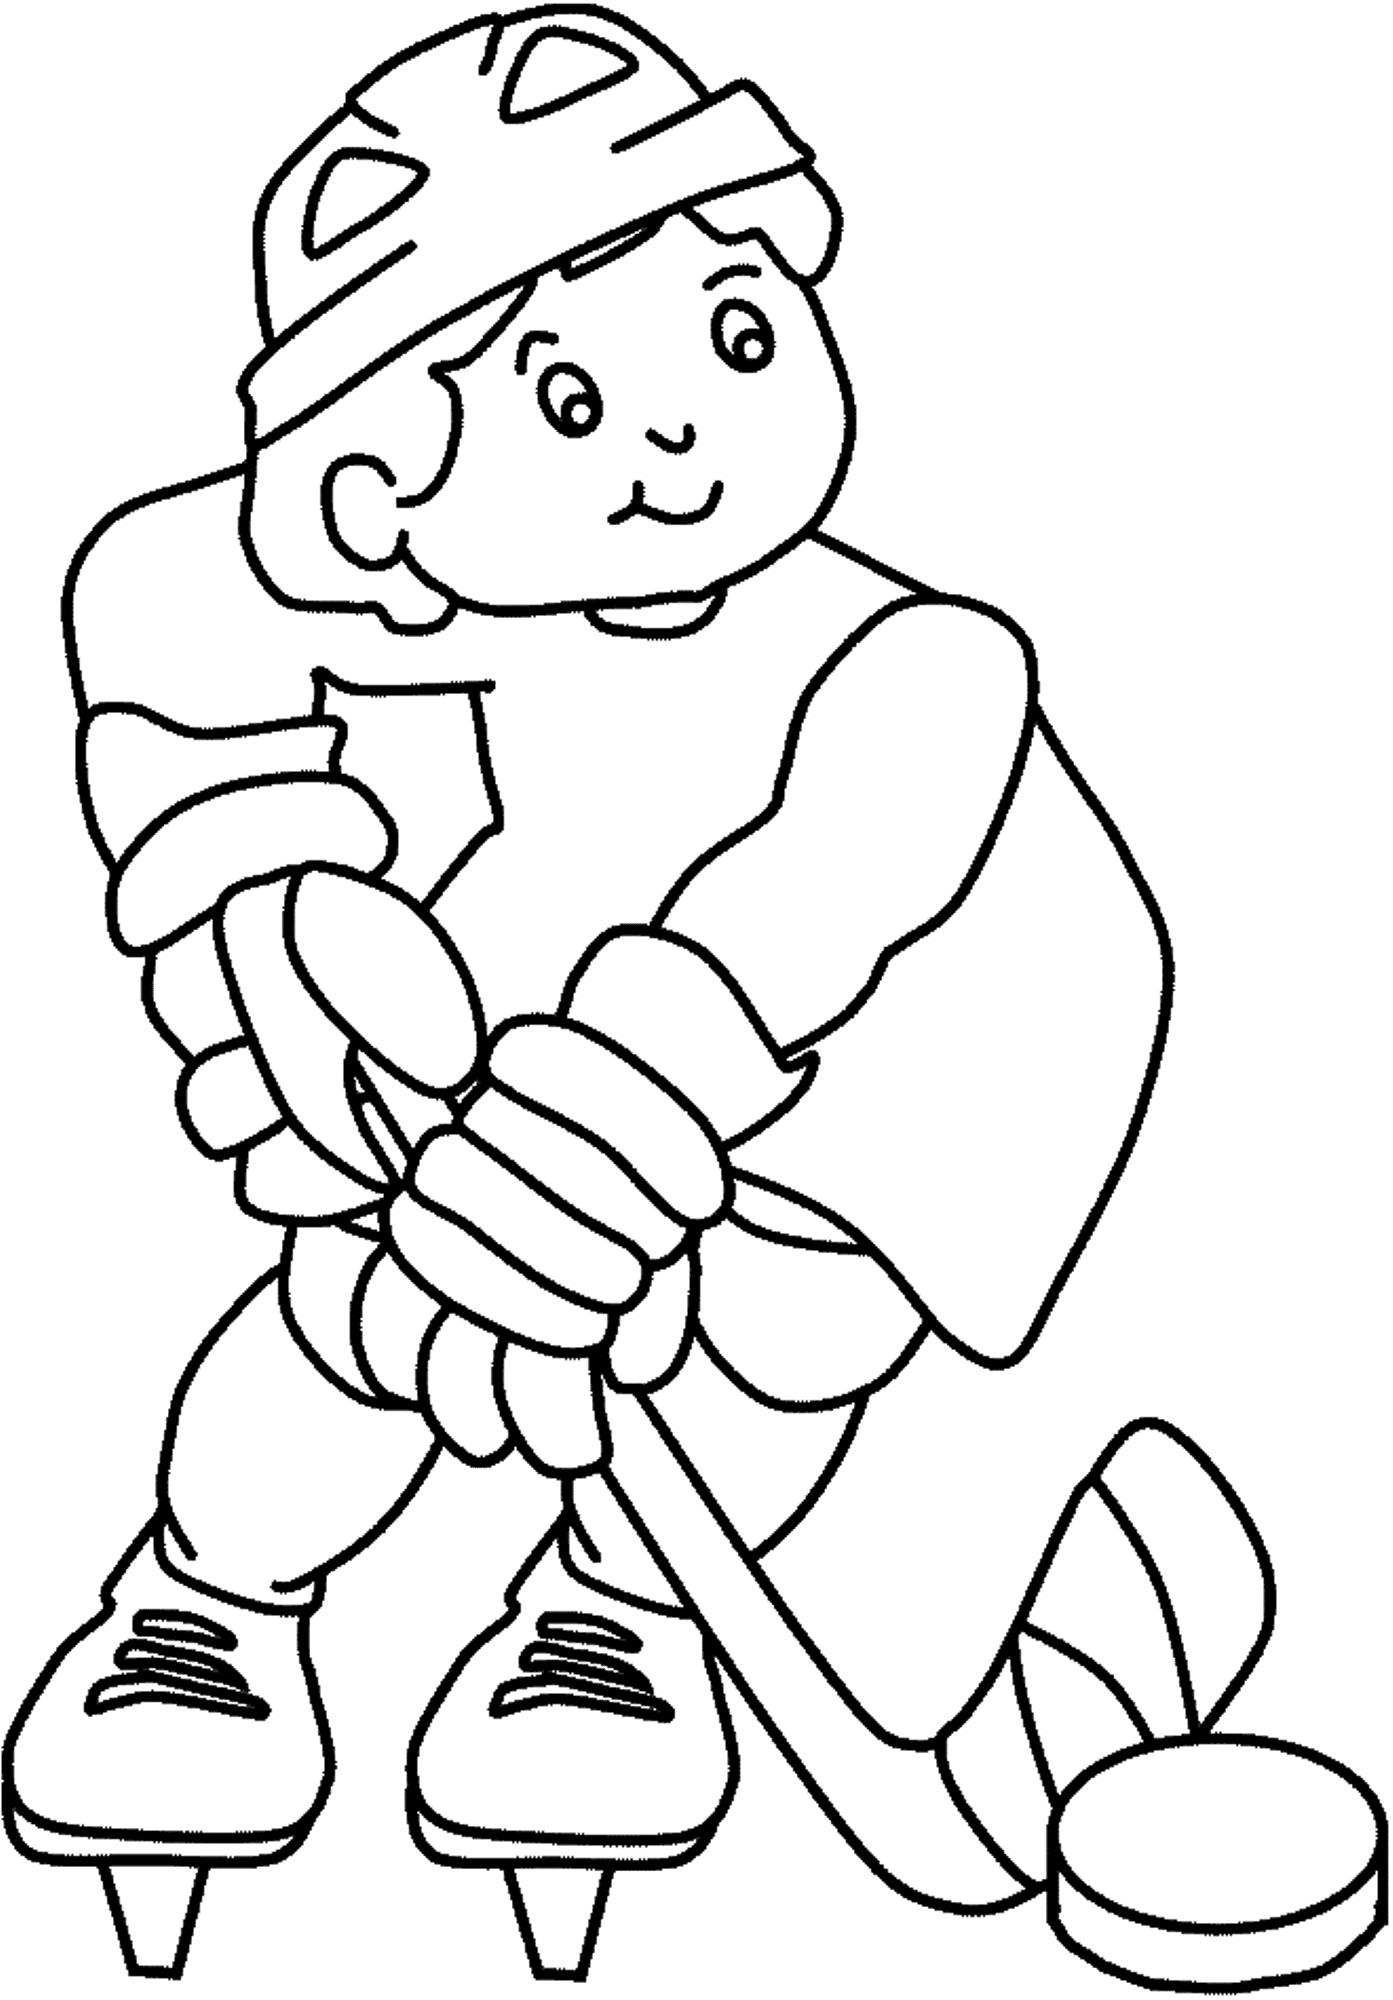 Happily Playing Hockey Coloring Picture For Kids Zima